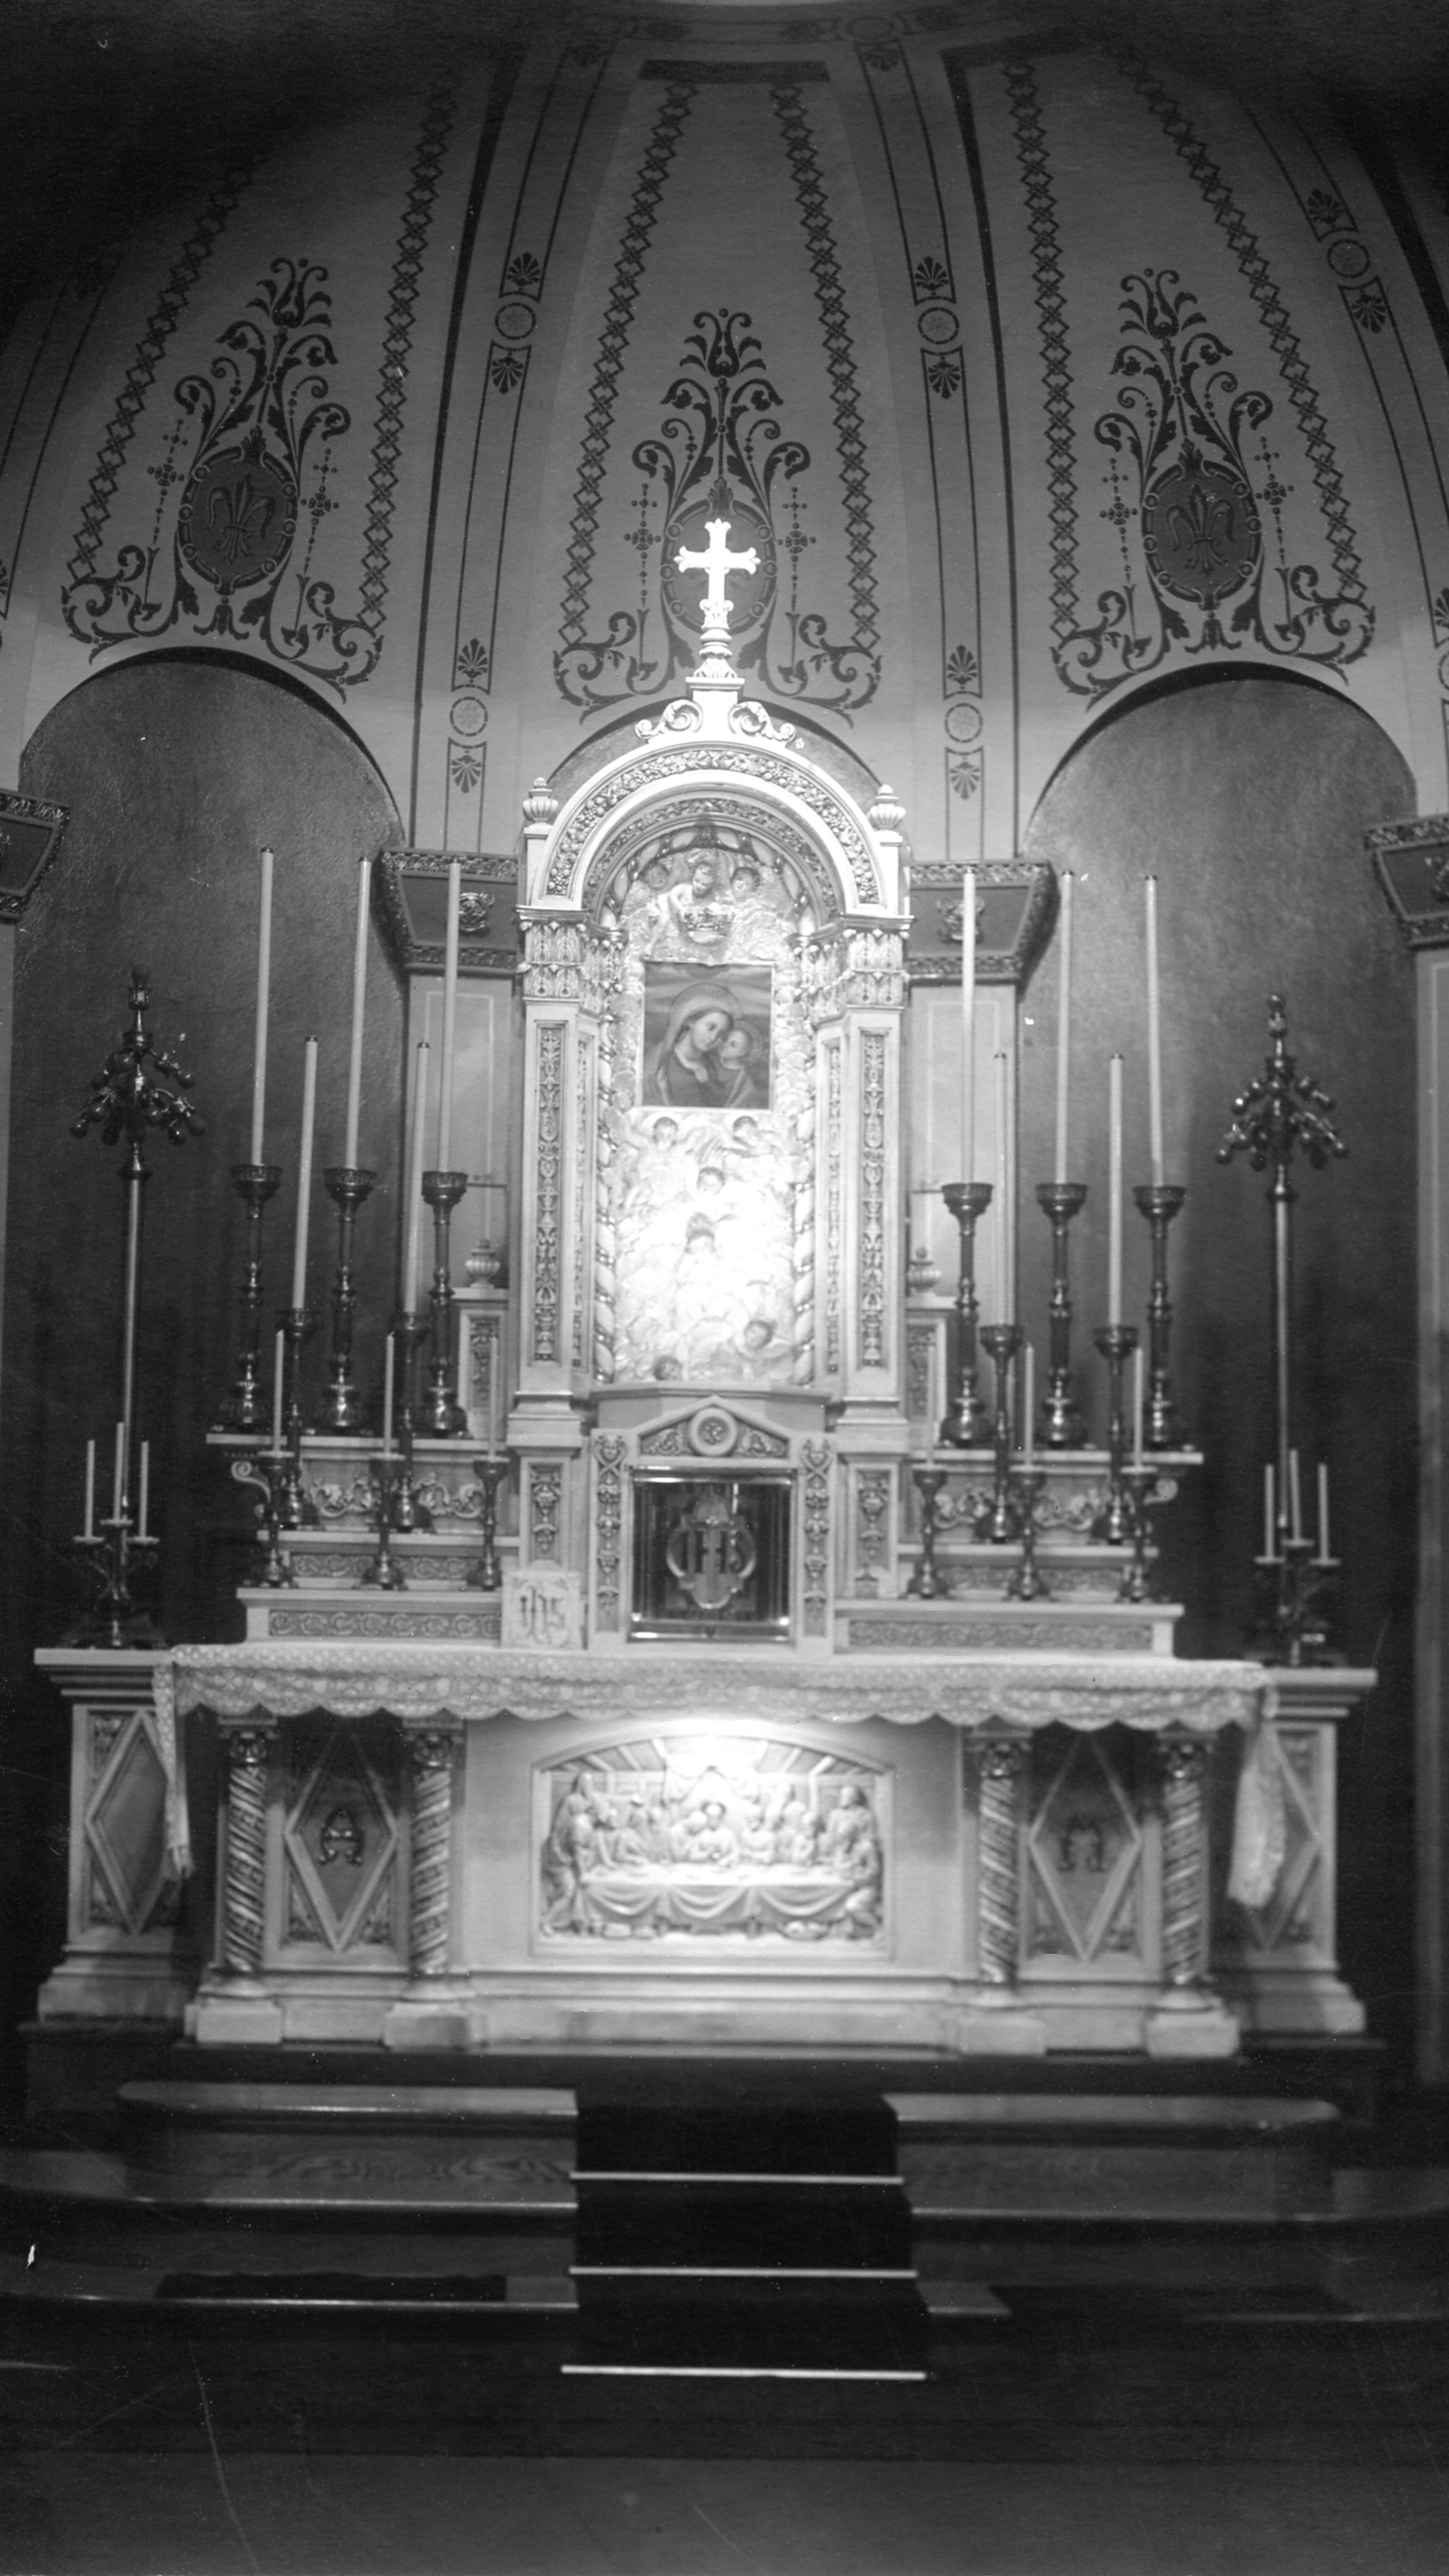 Altar at Our Lady of Good Counsel in South Philadelphia